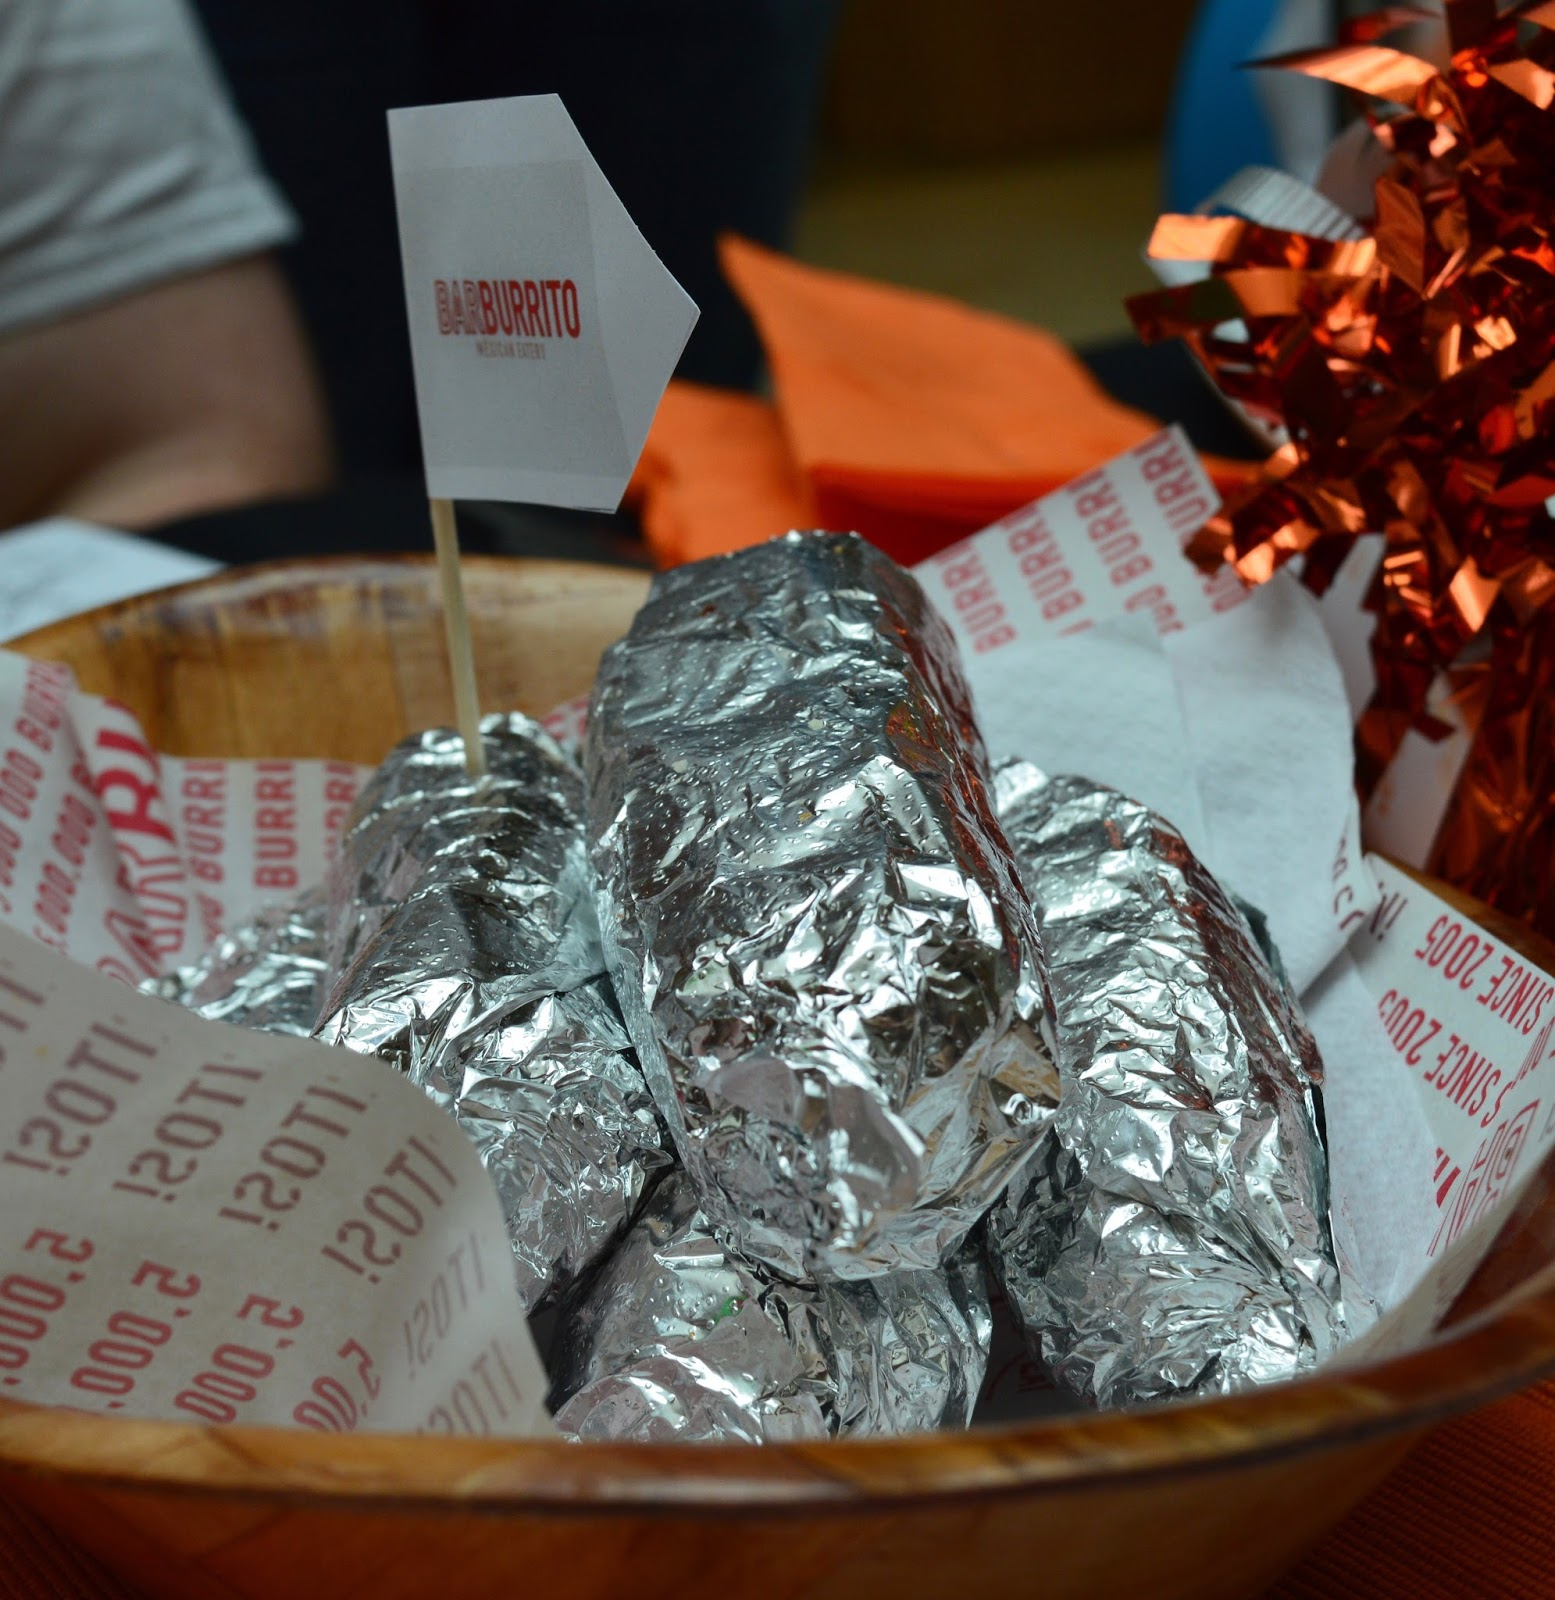 Our Guide to Family Restaurants & Children's Menus at intu Metrocentre - Burittos from Barburitto